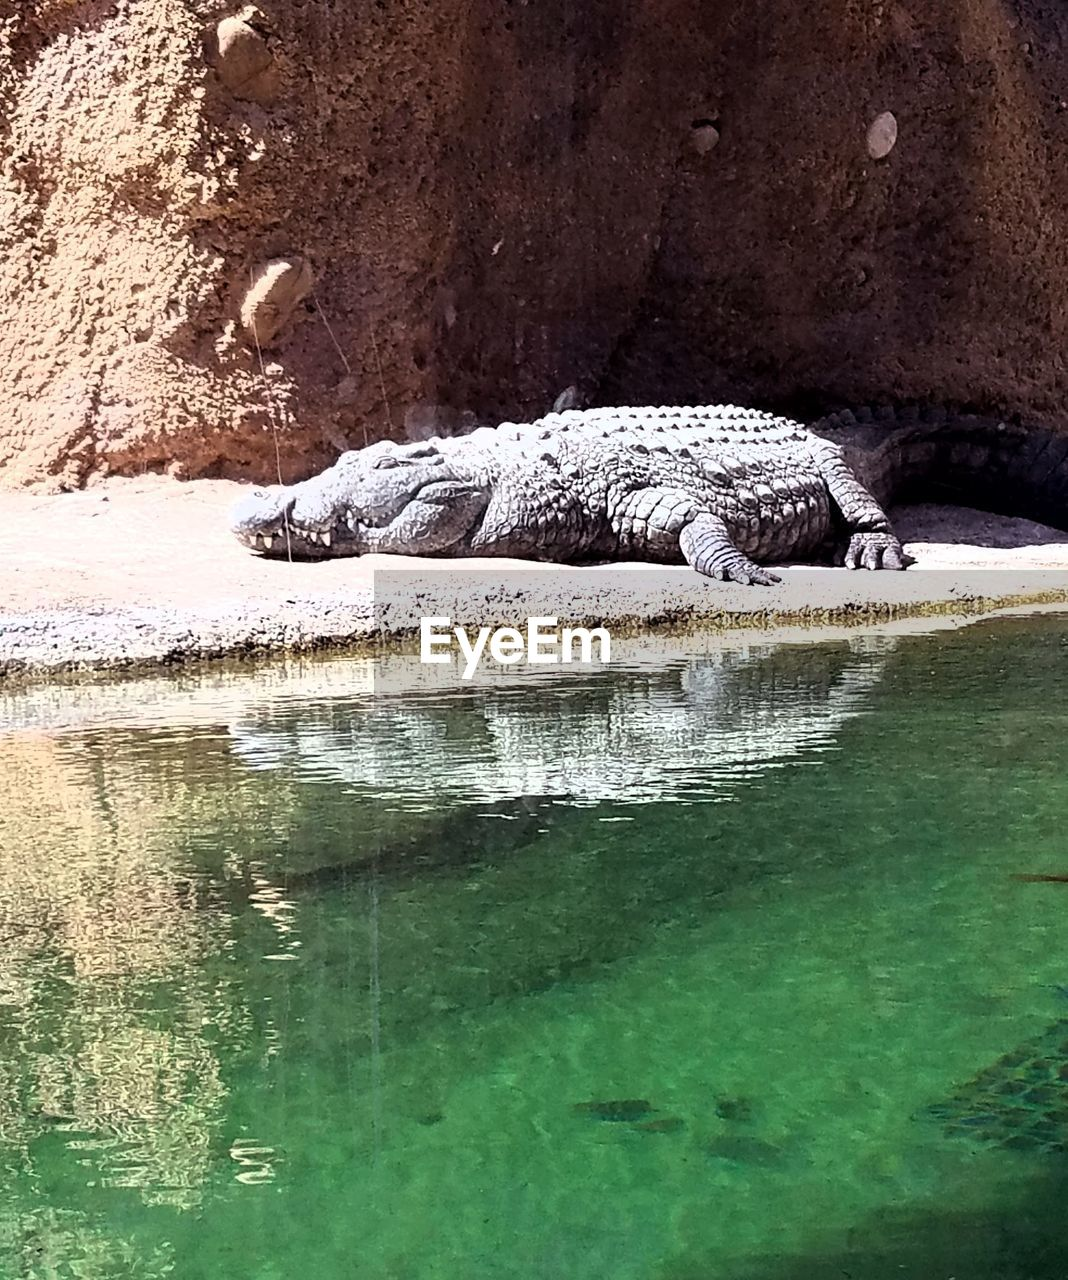 reptile, one animal, animals in the wild, crocodile, animal themes, animal wildlife, water, alligator, nature, day, no people, outdoors, beauty in nature, mammal